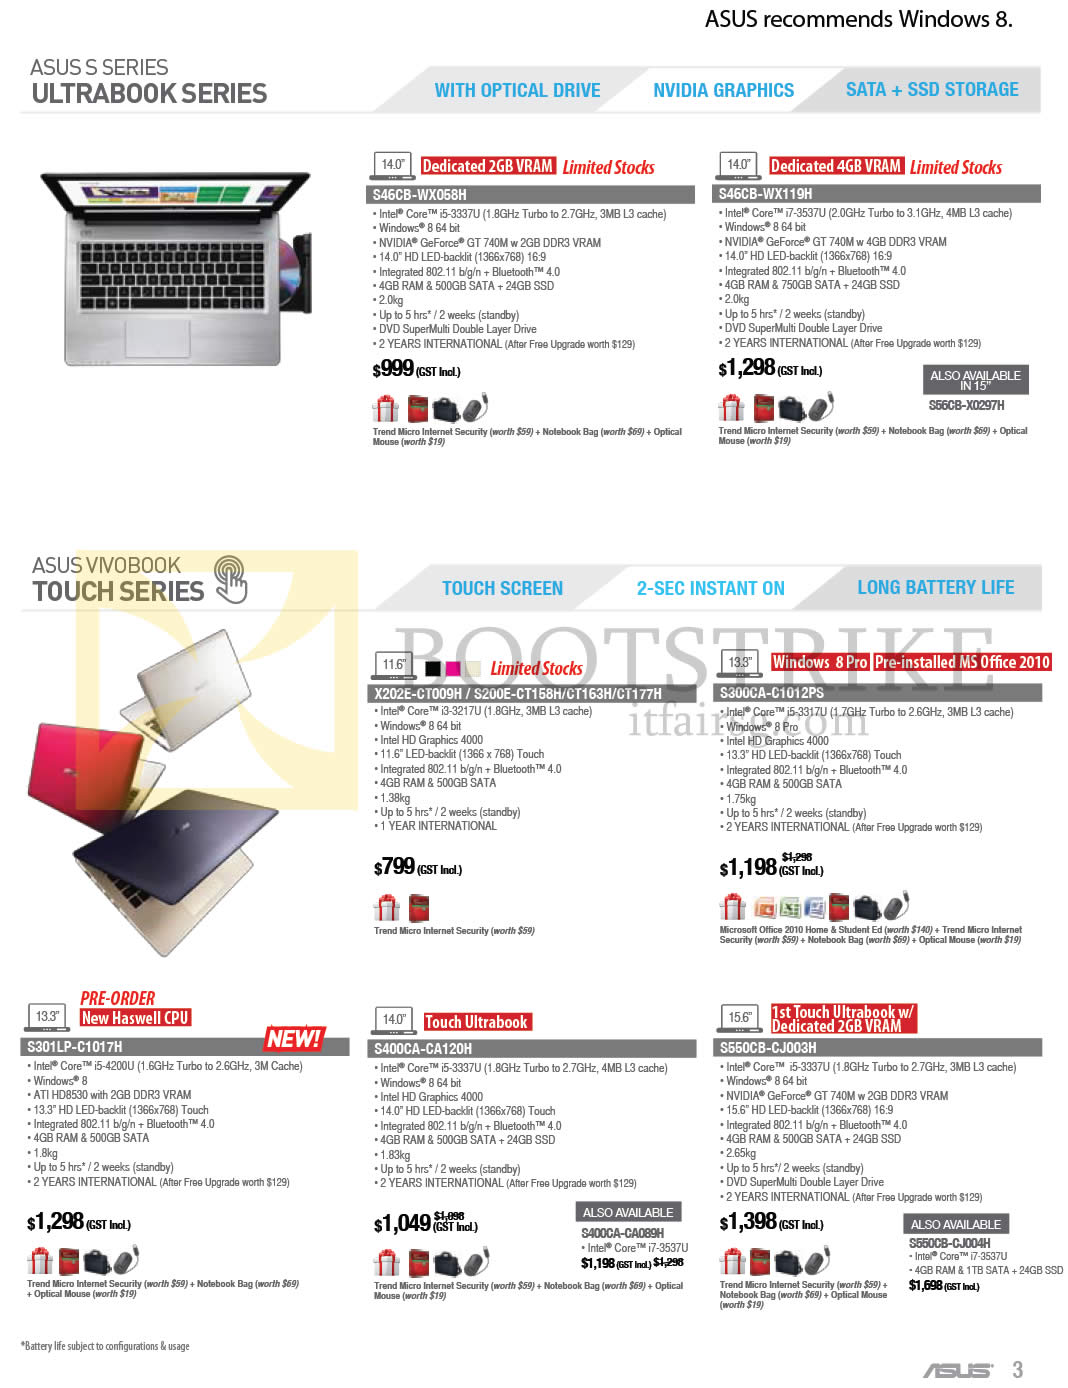 COMEX 2013 price list image brochure of ASUS Notebooks S46CB-WX058H WX119H, Vivobook X202E-CT009H, S200E-CT158H CT163H CT177H, S300CA-C1012PS, S301LP-C1017H, S400CA-CA120H, S550CB-CJ003H